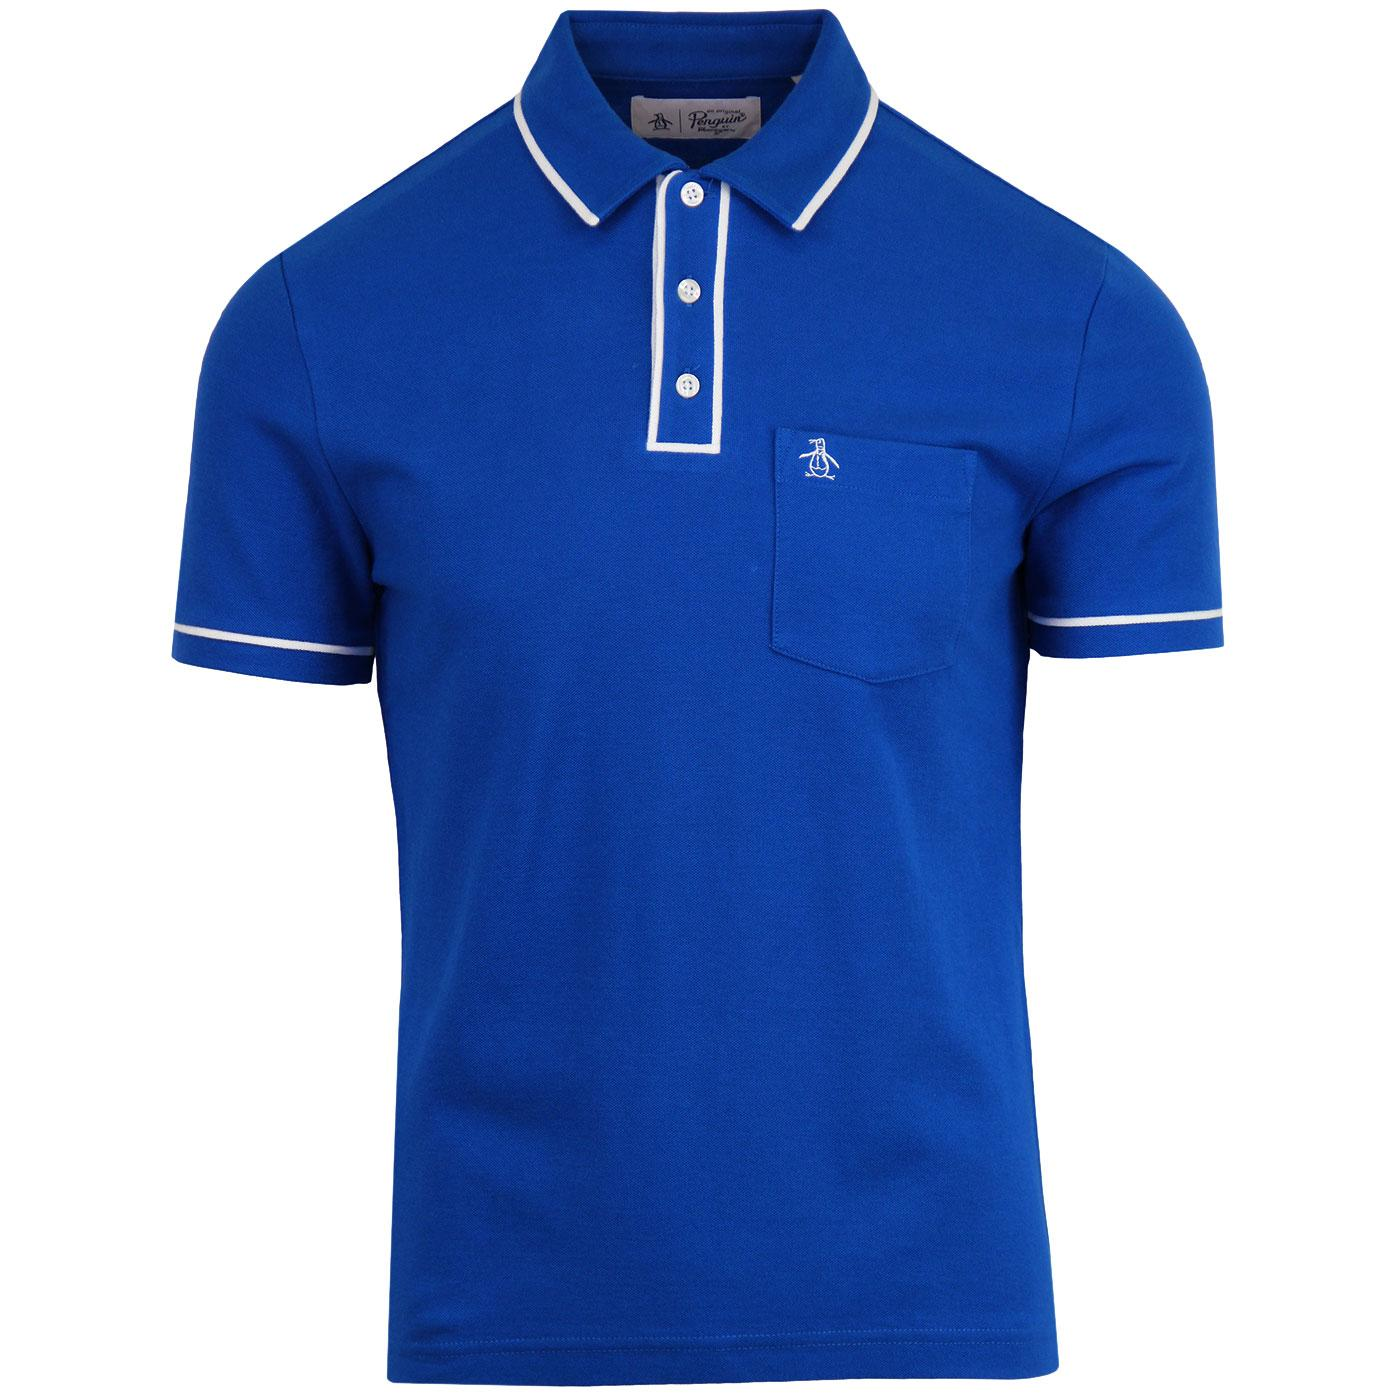 Earl ORIGINAL PENGUIN Retro Mod Tipped Polo Top CB